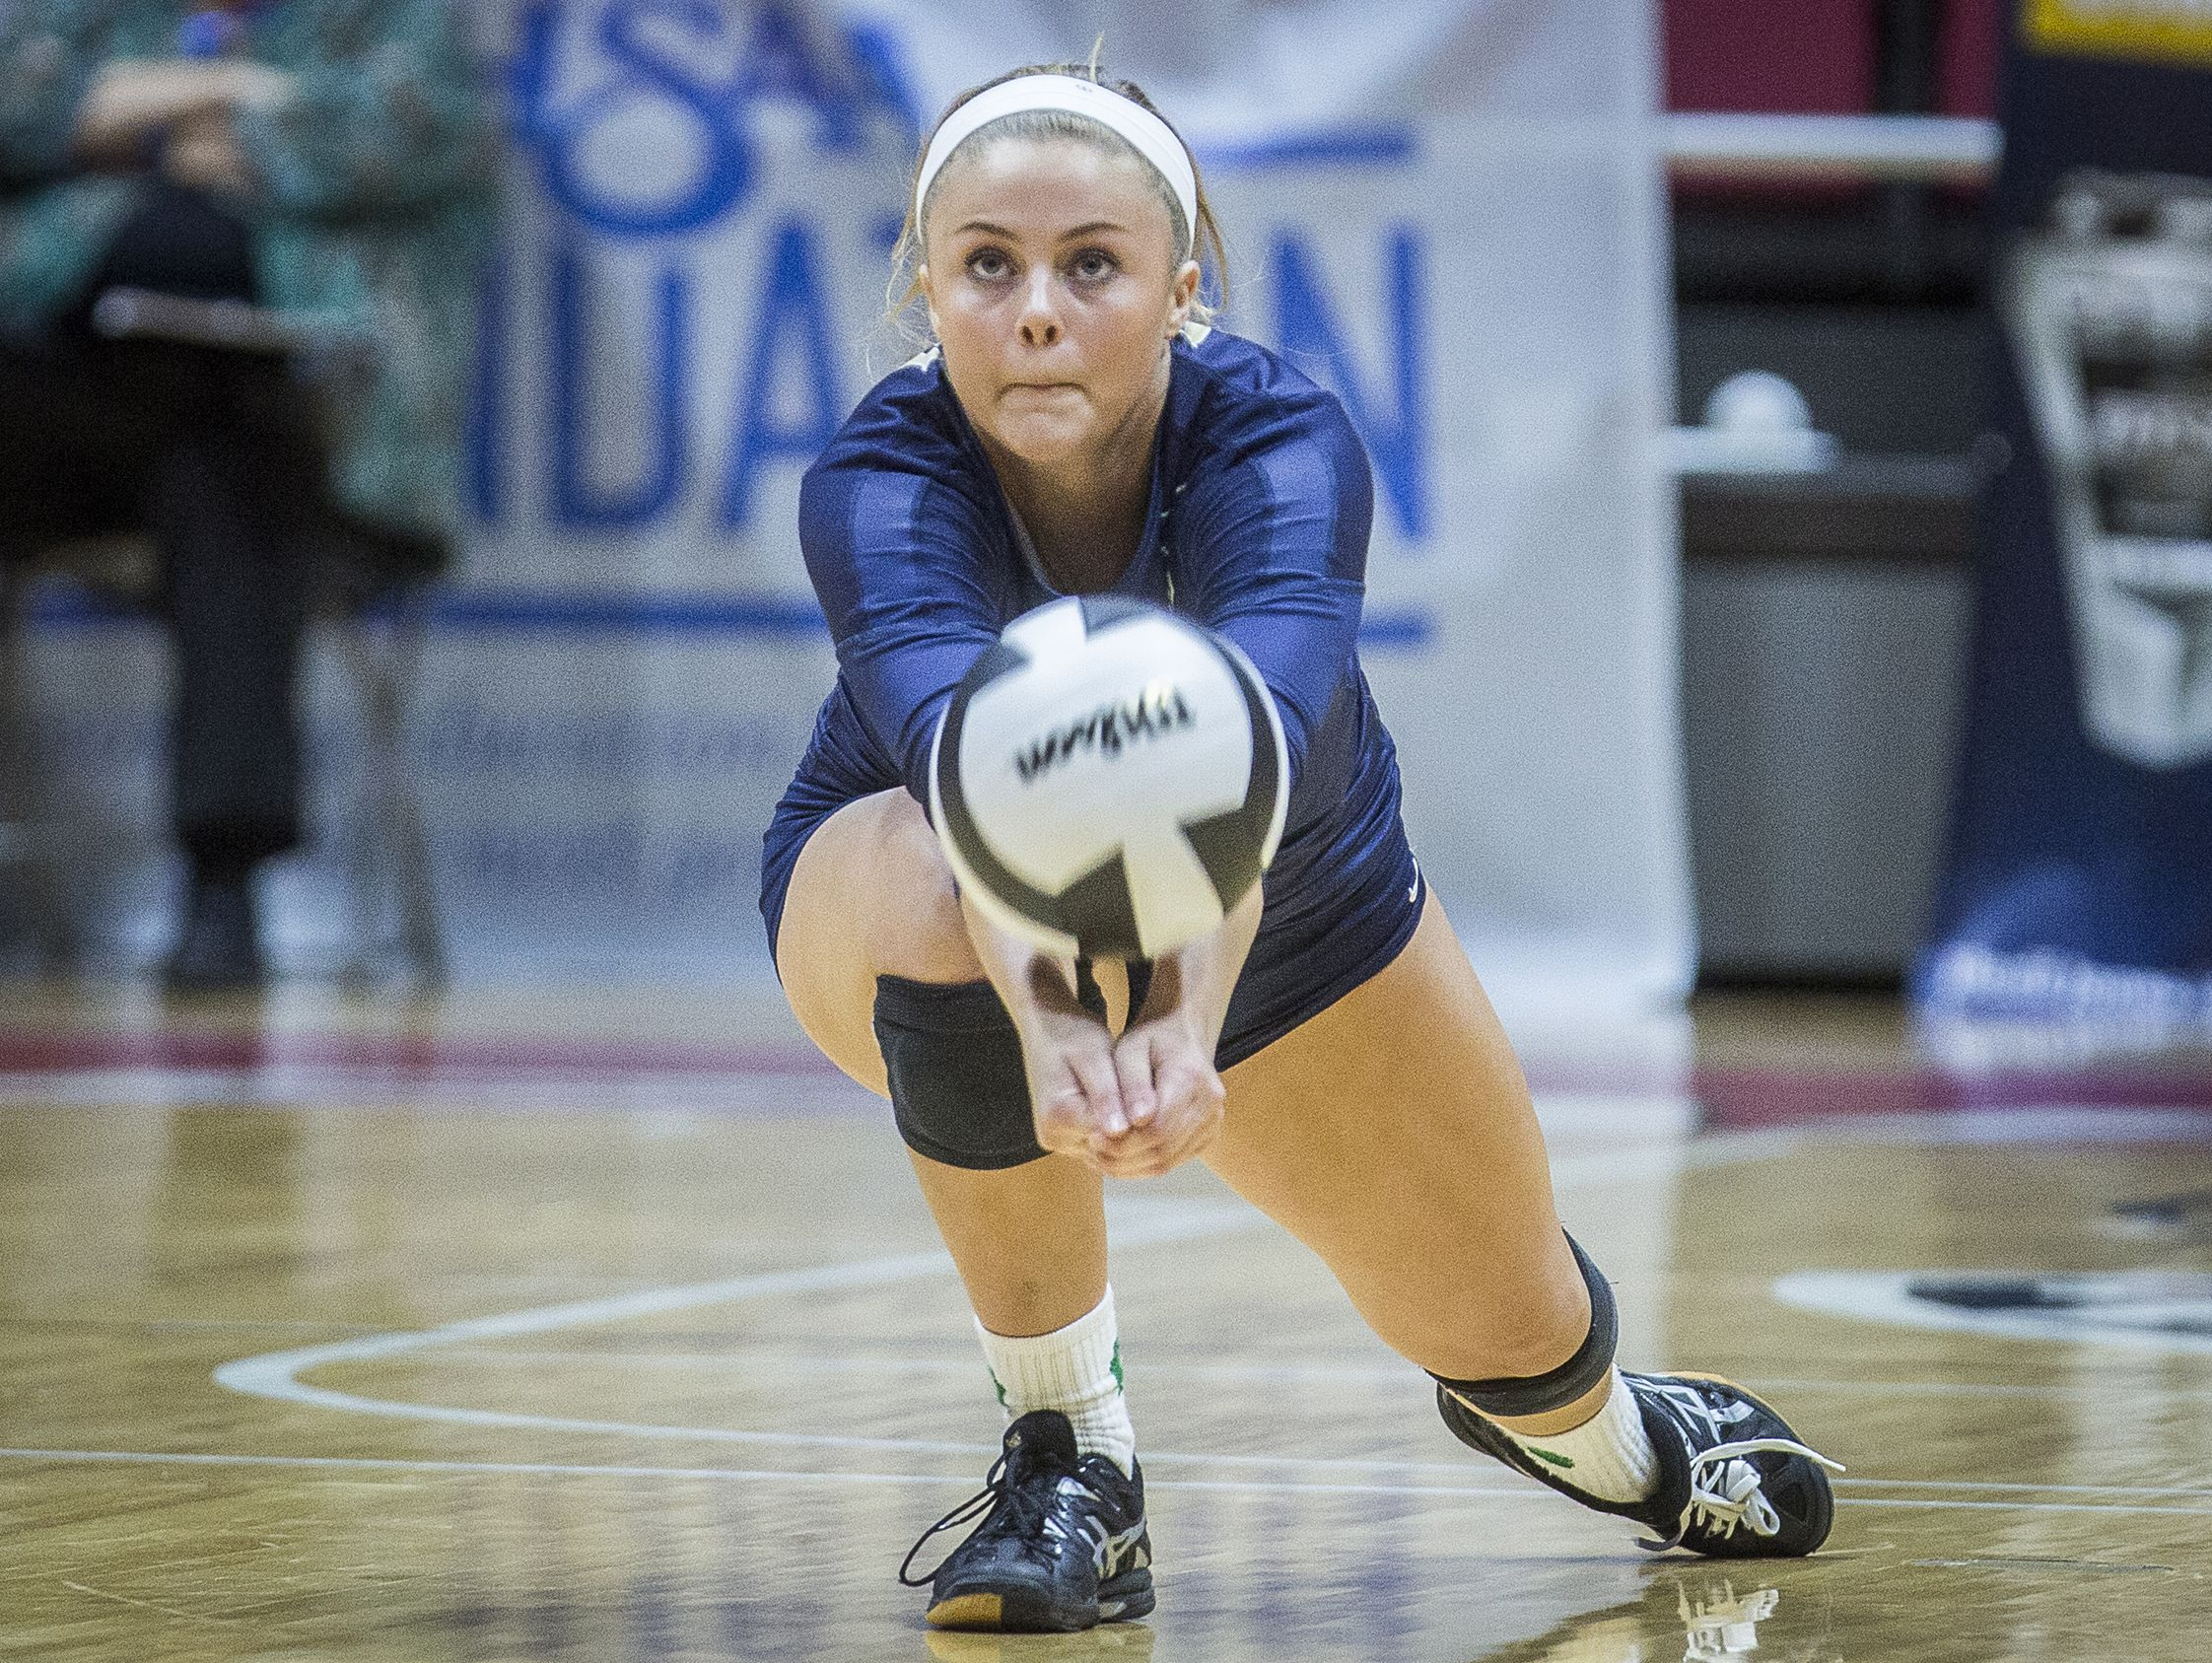 Cathedral's Payton White passes during their state final match against Crown Point at Worthen Arena Saturday.